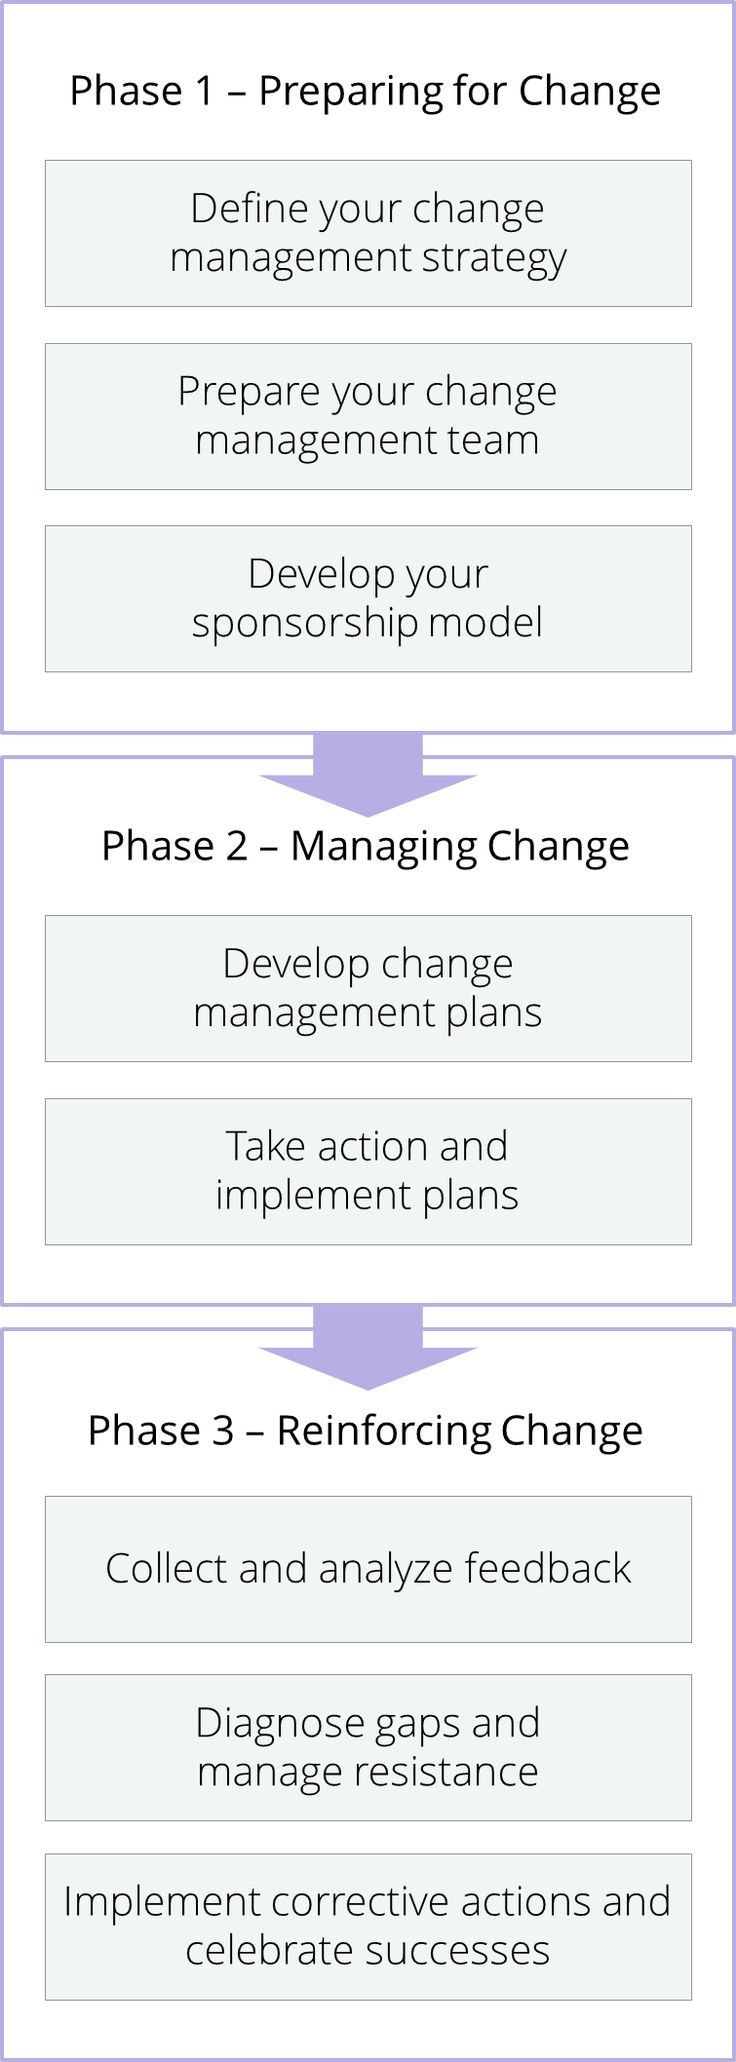 organizational change plan part iii Hcs 586 week 2 strategic plan part i organizational structure read the following strategic plan overview: by definition, a strategic plan is designed to be used for 3 to 5 years or more.